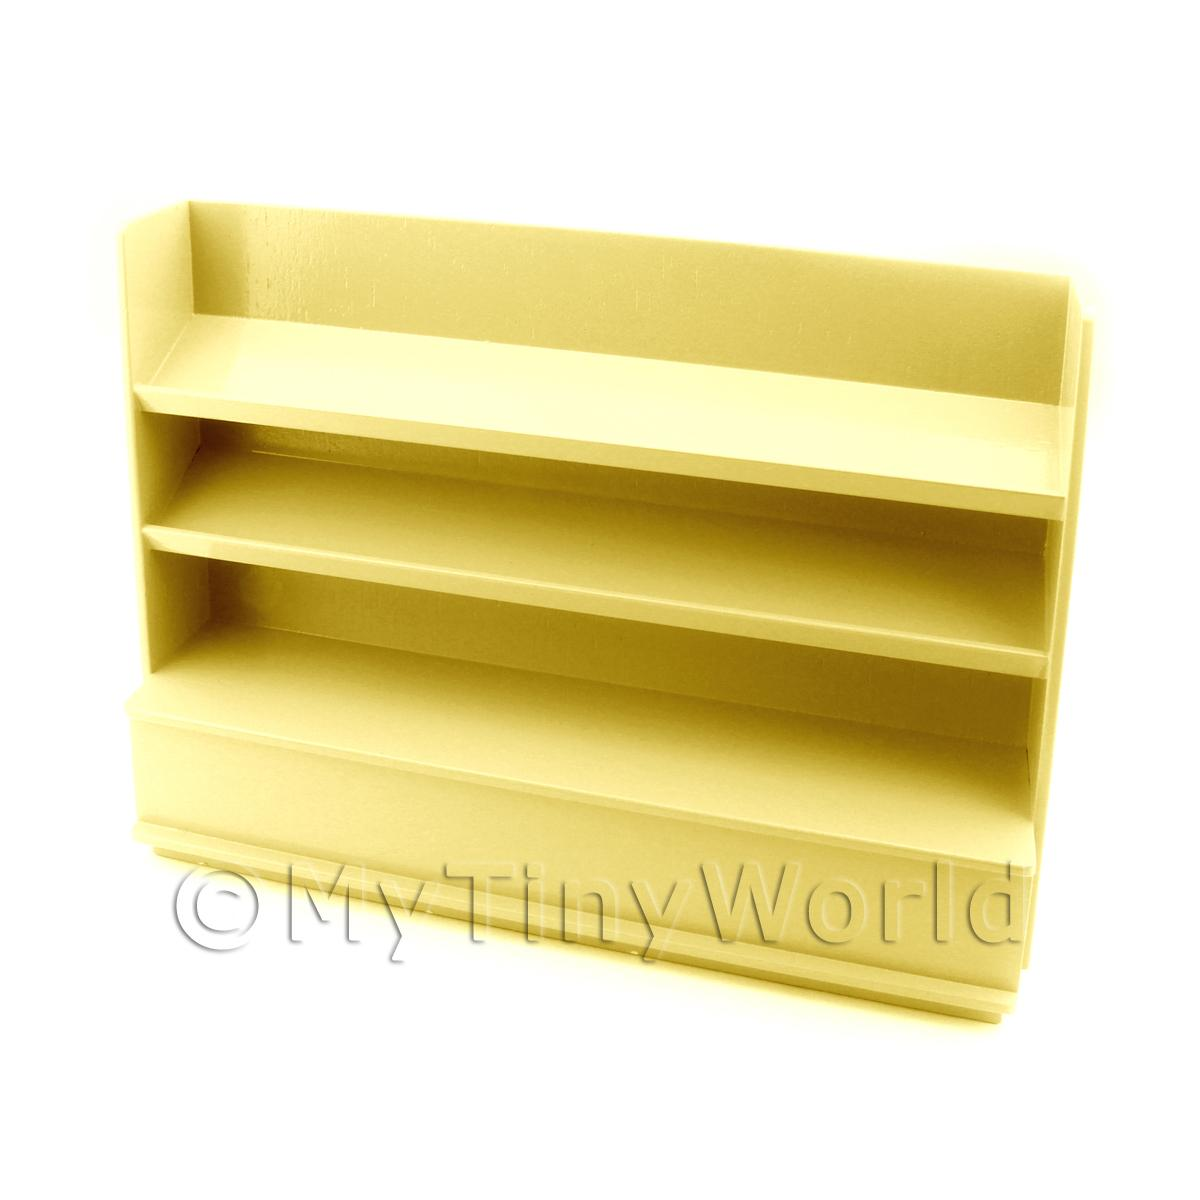 Miniature Light Yellow Painted Wood Shelved Shop Display Unit